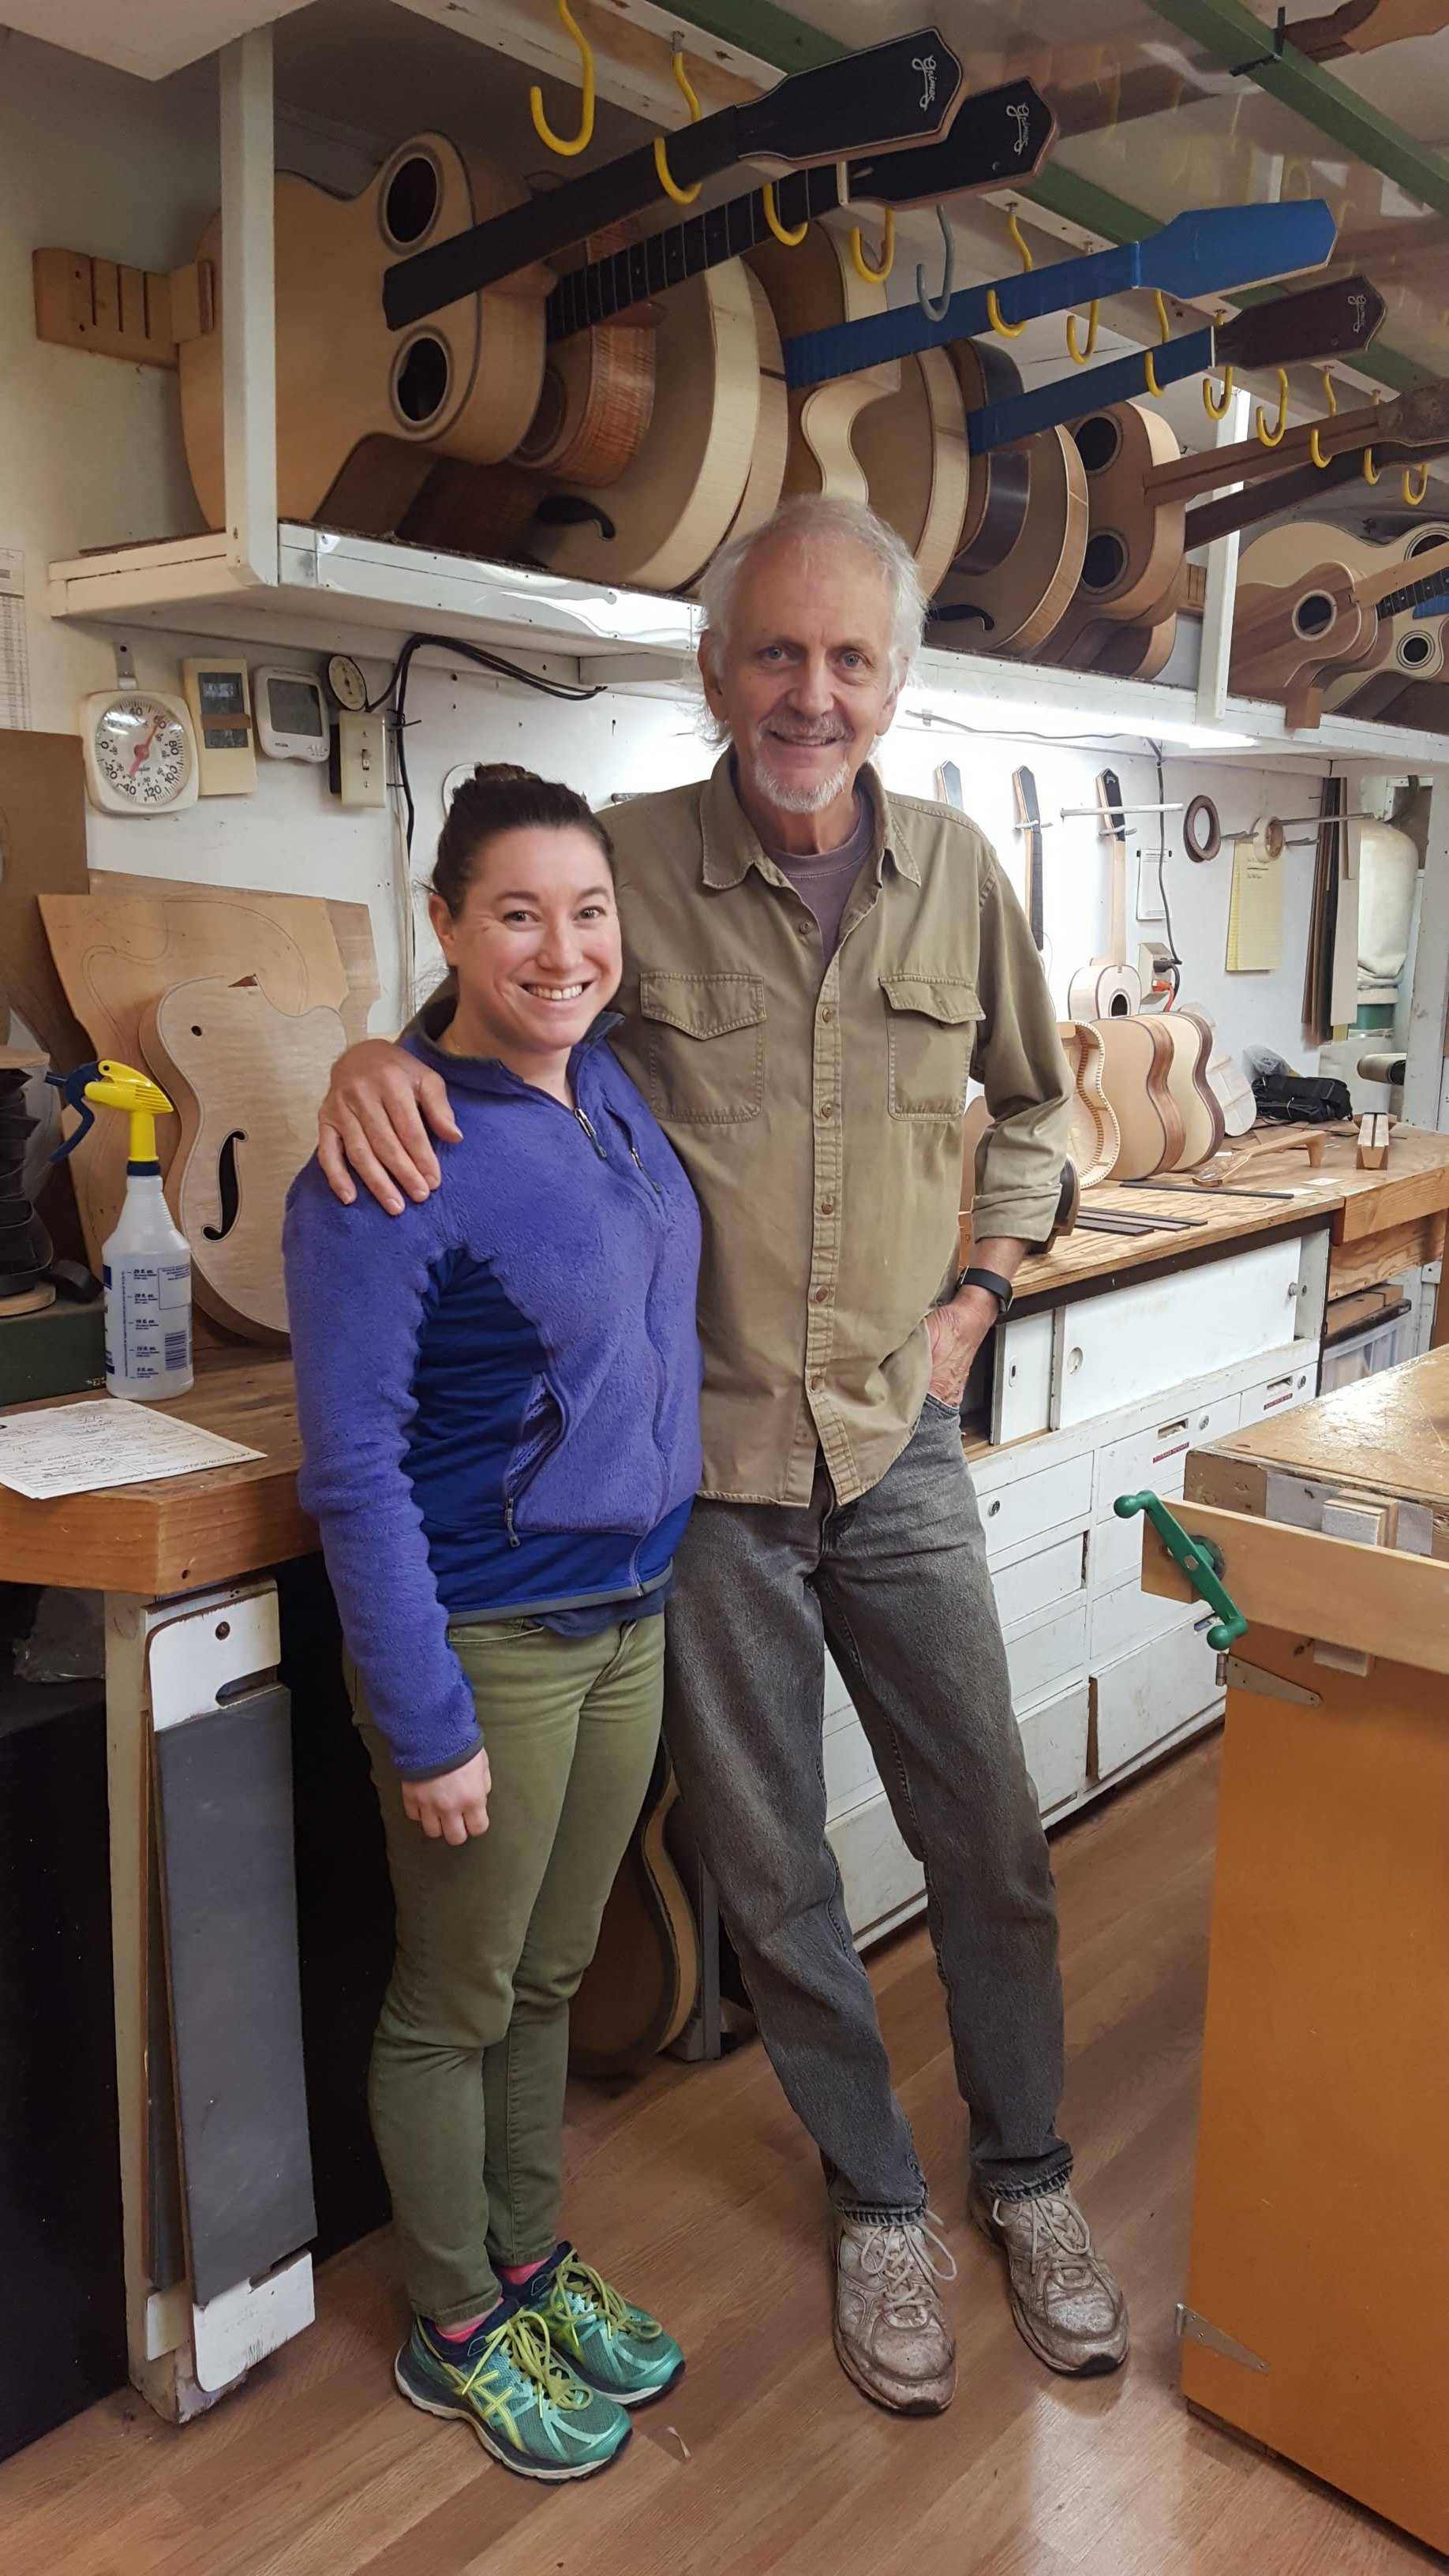 Visiting Steve Grimes in his shop on Maui.